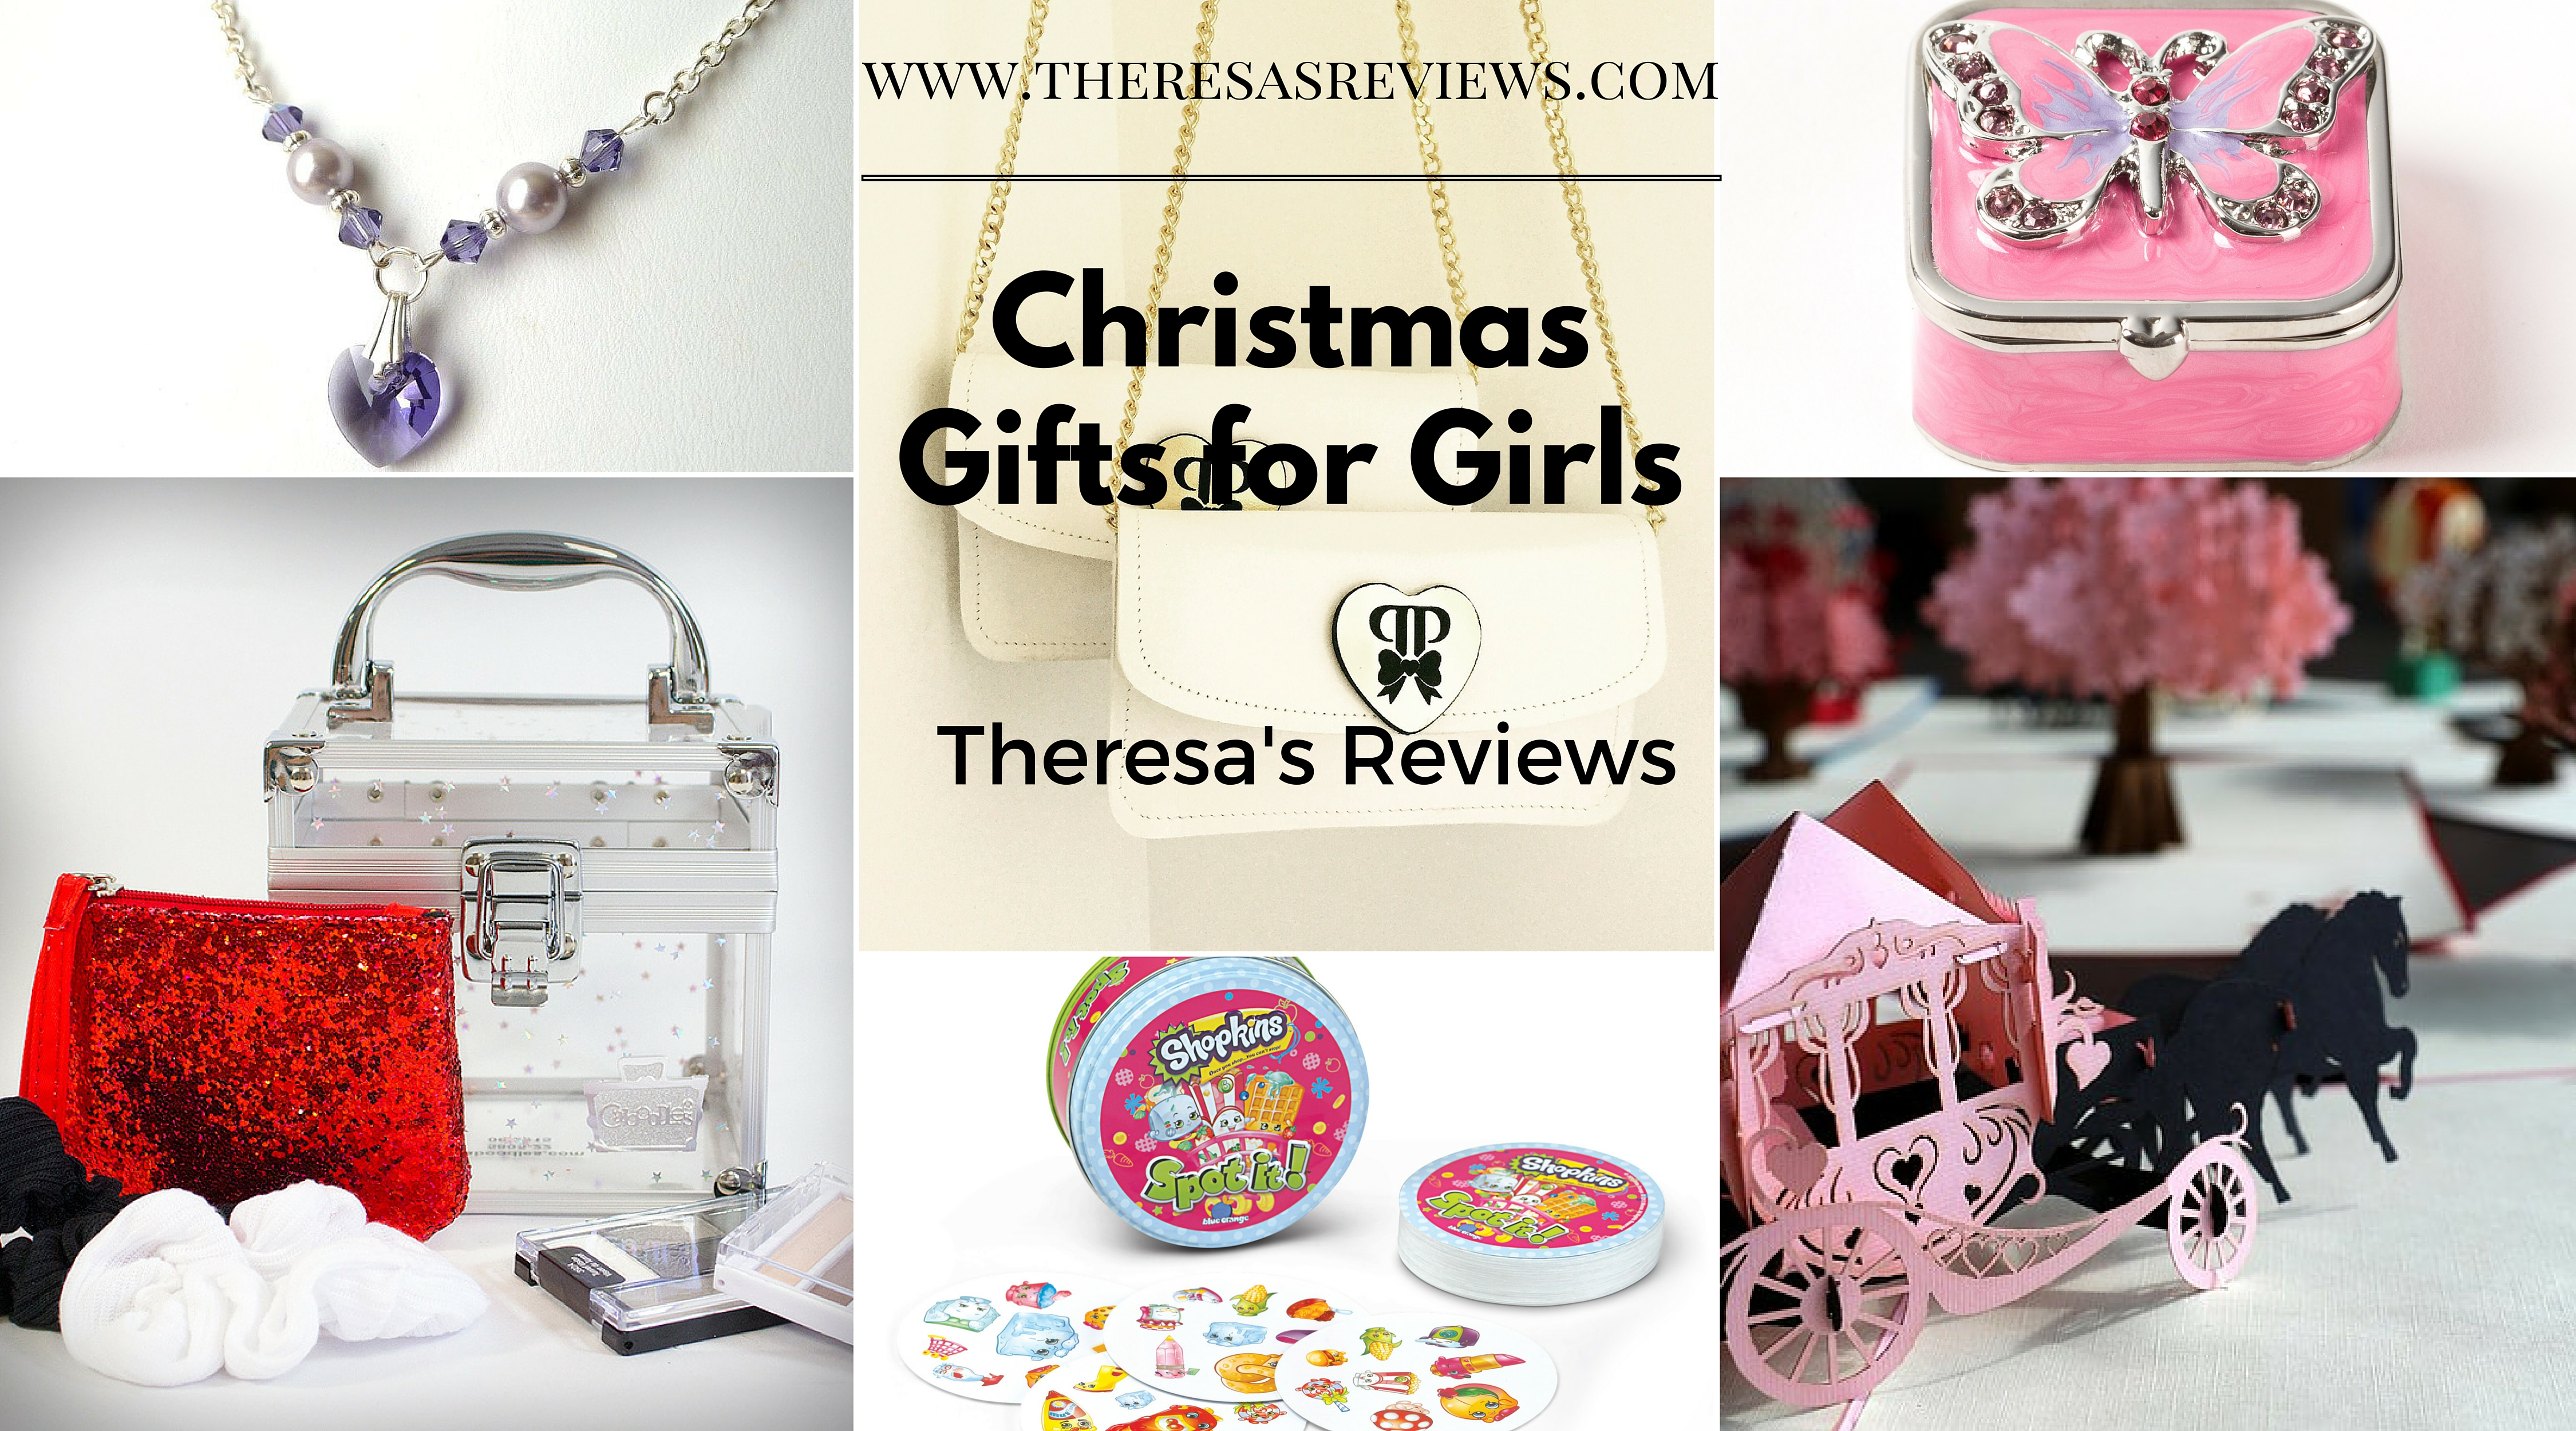 Christmas Gifts For Girls.2015 Christmas Gifts For Girls Theresa S Reviews